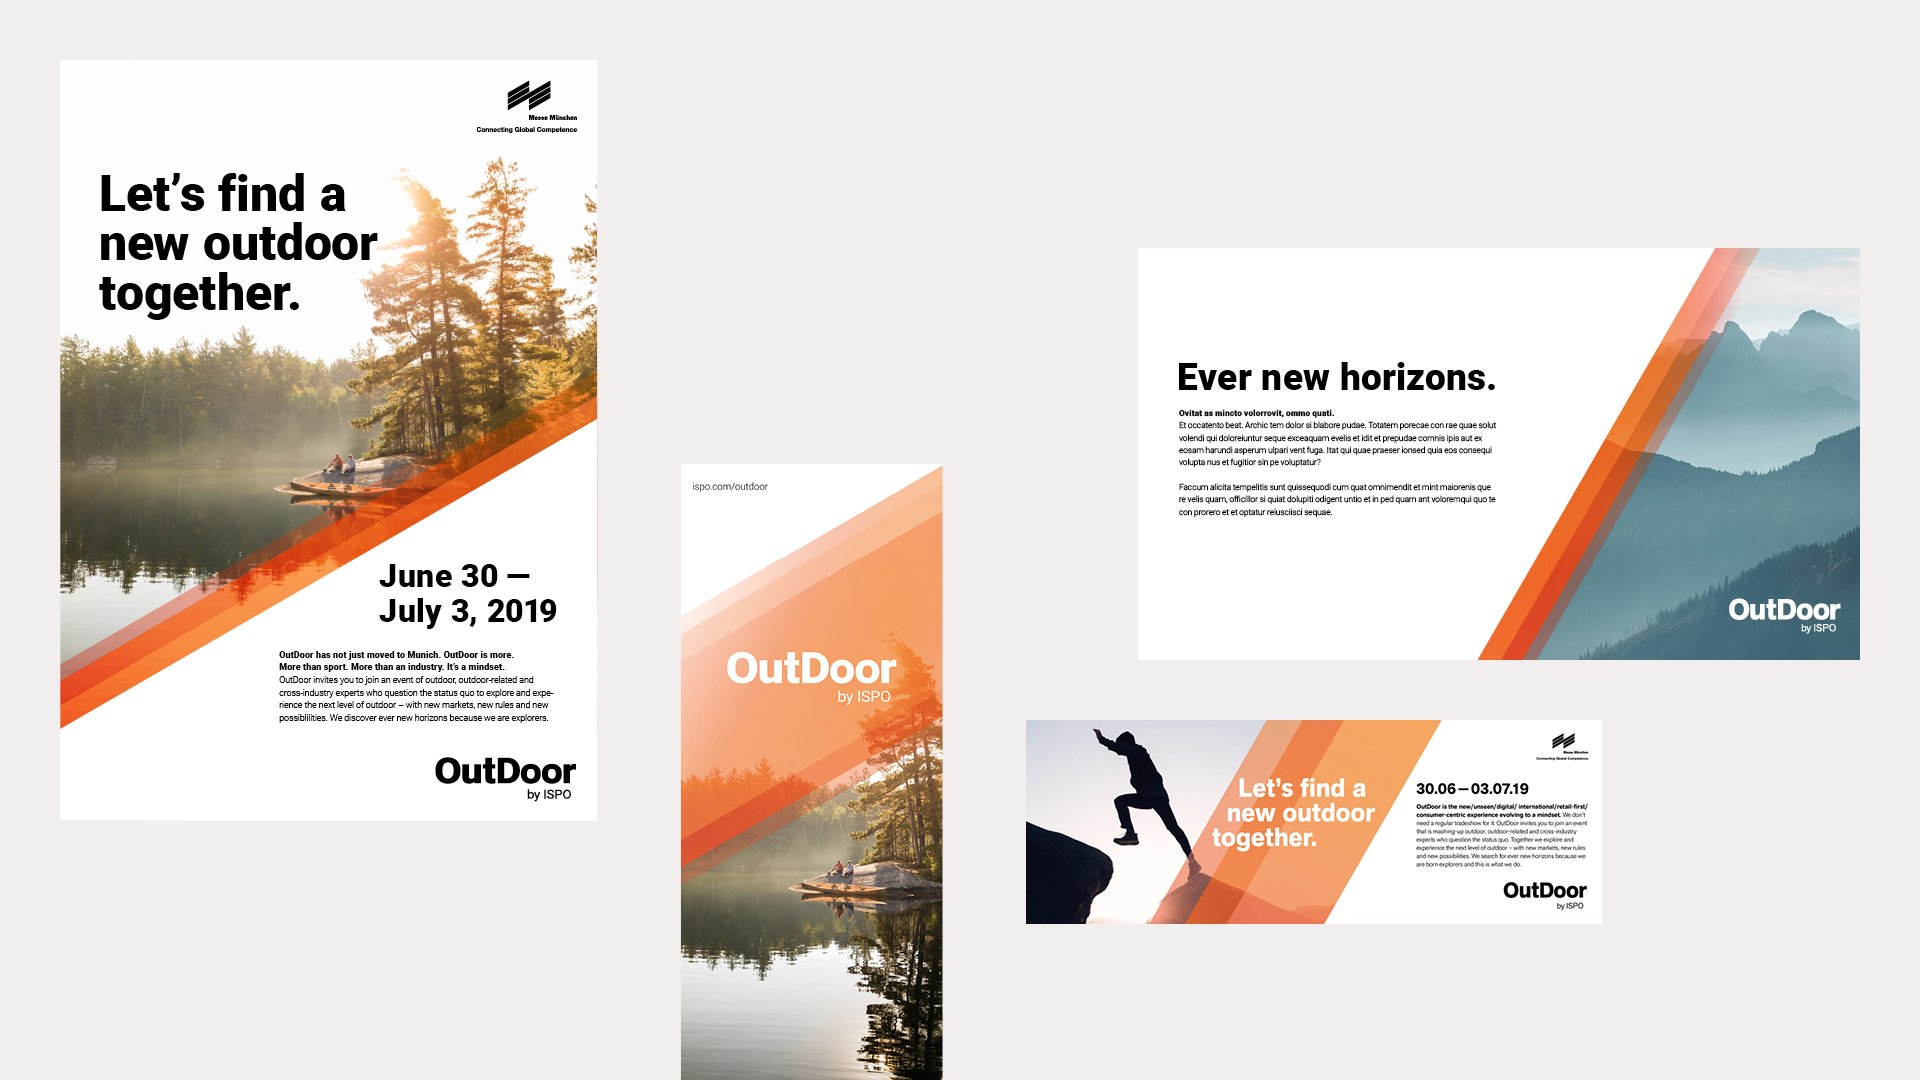 OutDoor by ISPO Corporate Design Dorten studios creative consultancy